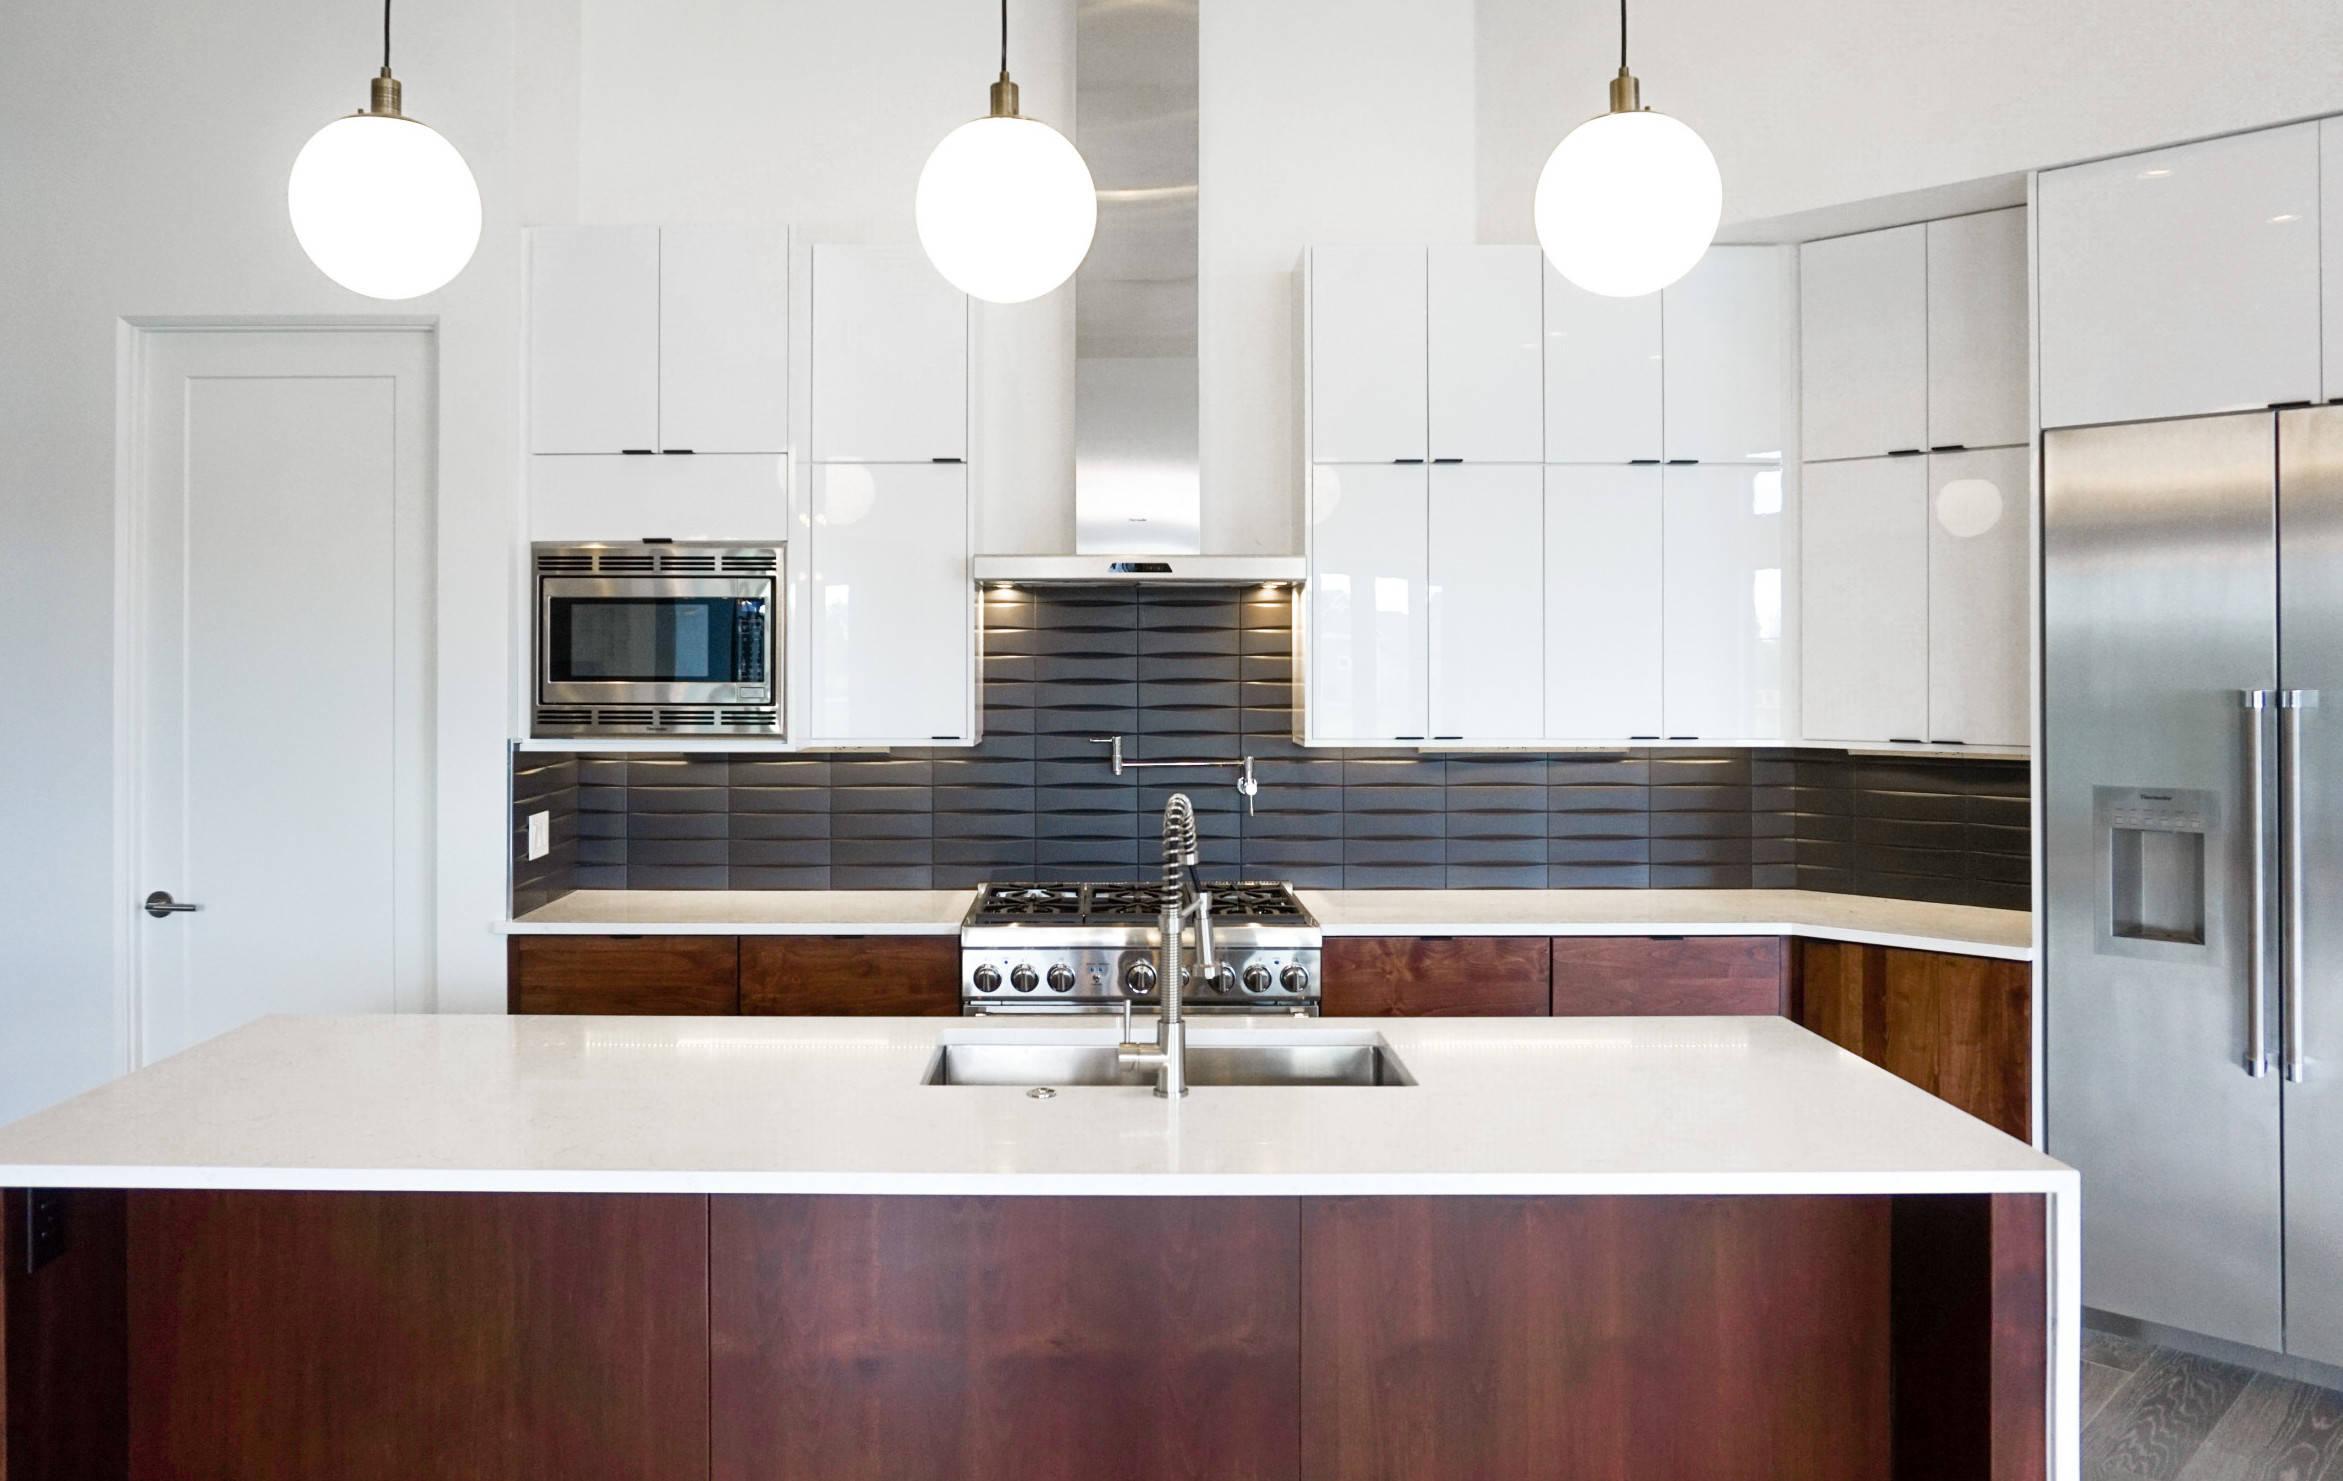 who is studio boise studio boise residential design